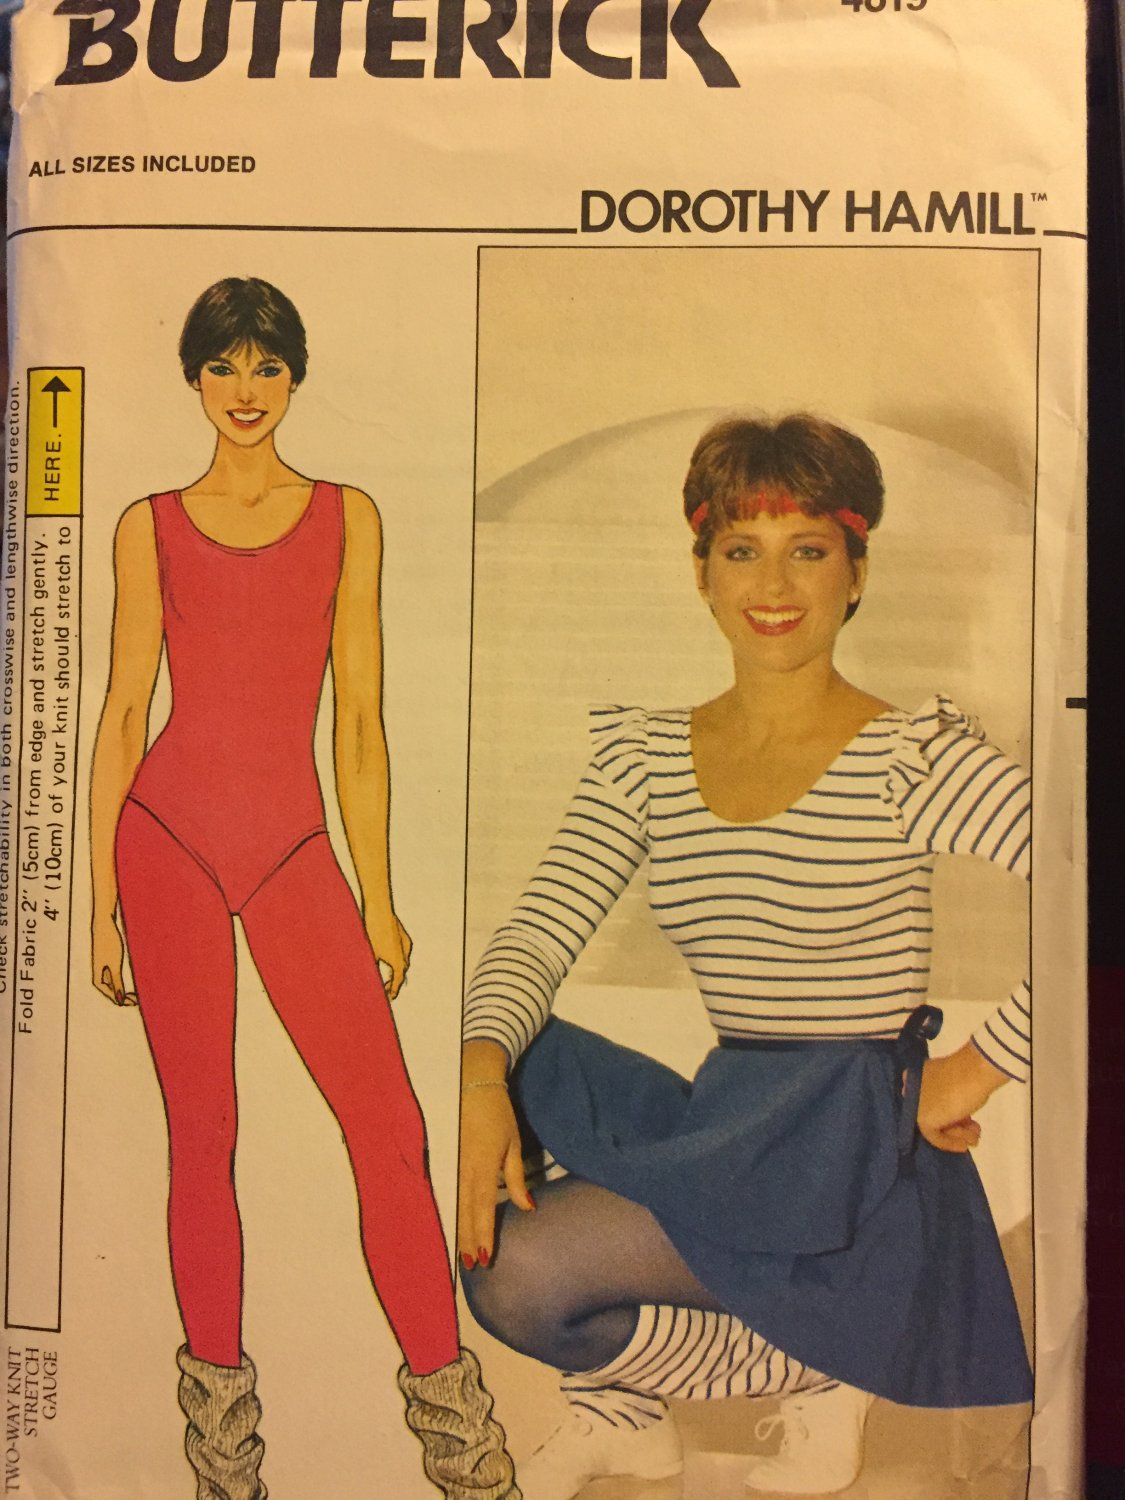 Butterick 4819 Body Suit Skirt Tights Leg warmers sewing pattern  Sz 8 - 18 Dorothy Hamill